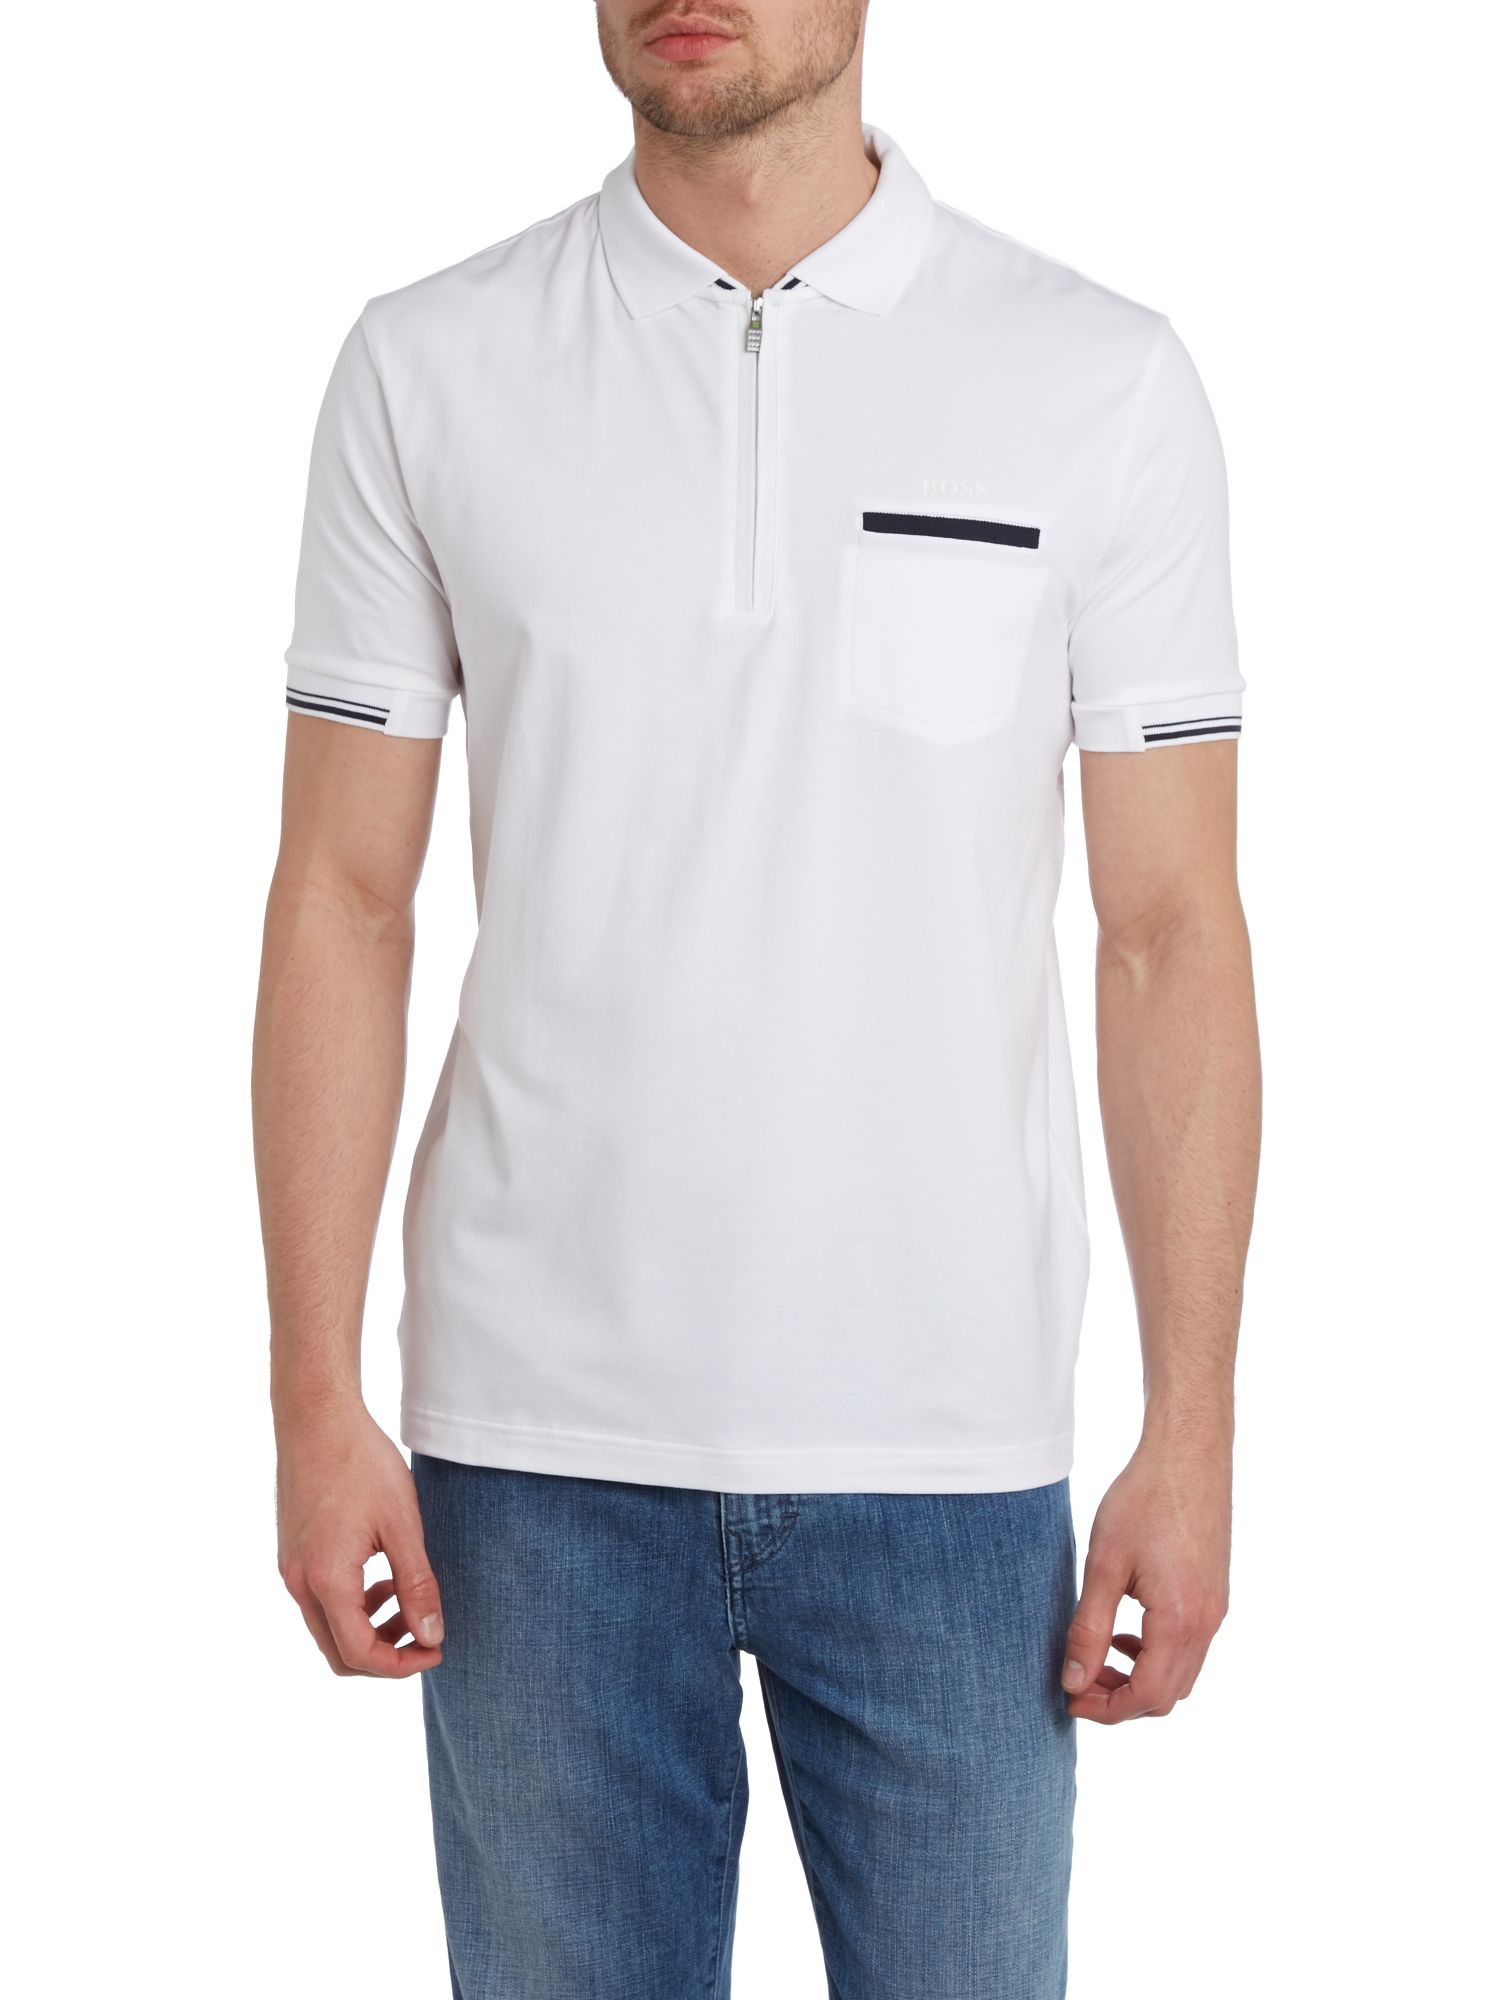 Zip up polo shirt